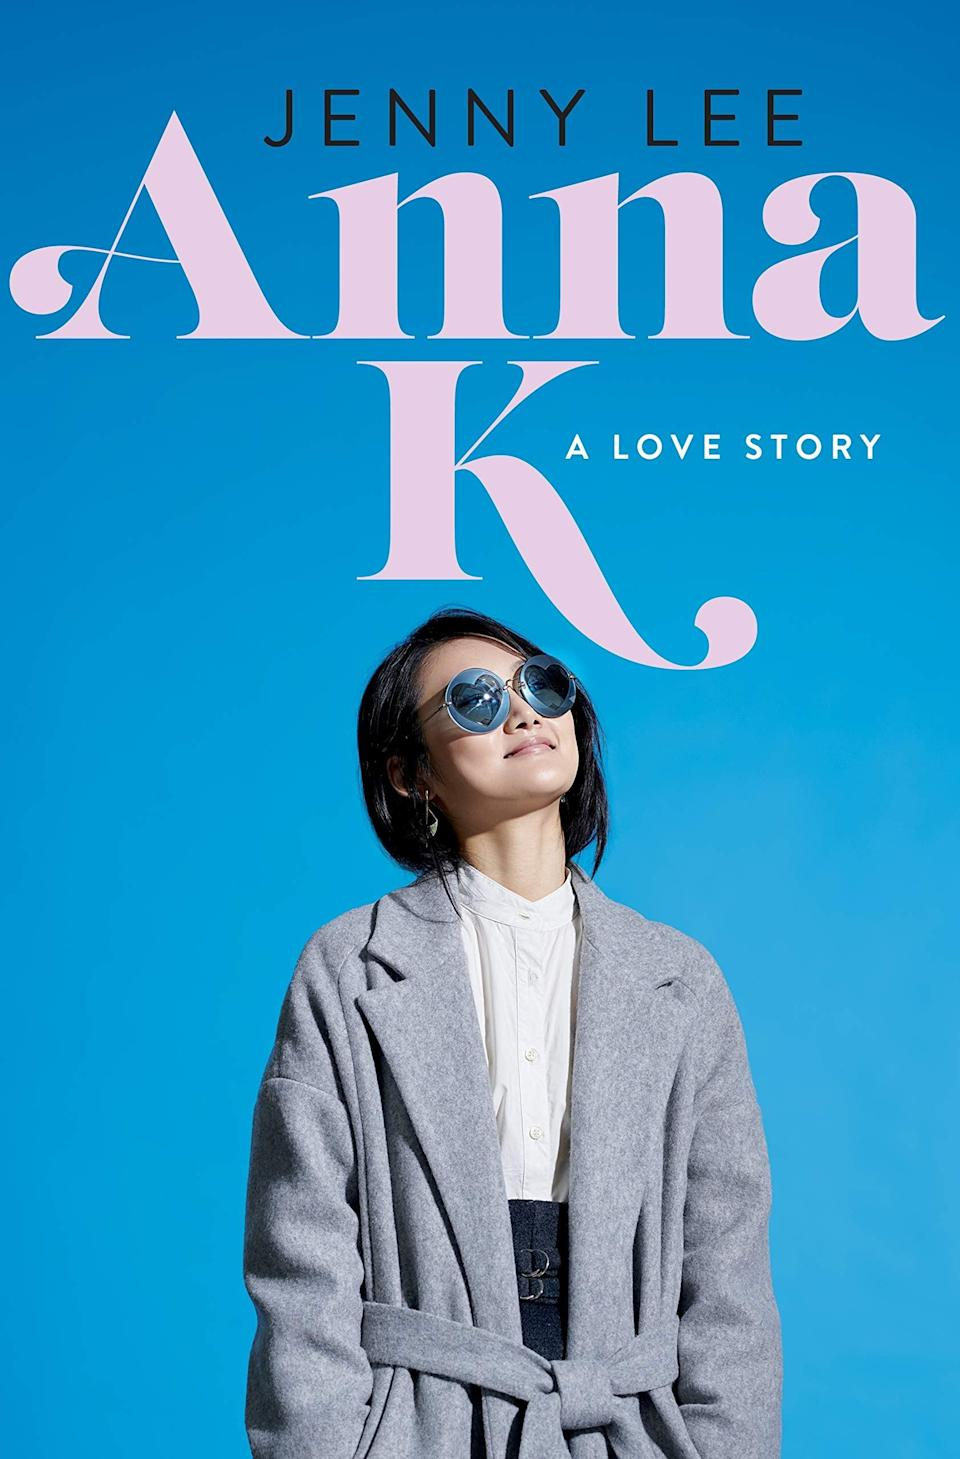 <p><strong>Anna Karenina</strong> doesn't exactly seem like an obvious choice for a contemporary YA romance retelling, but that's exactly what <strong><span>Anna K.</span></strong> by Jenny Lee does! Seventeen-year-old Manhattan socialite Anna has a seemingly perfect life, even as she and her inner circle deal with a handful of teenage scandals, but everything changes when she meets Alexia Vronsky, a bad boy who's as drawn to her as she is to him.</p>